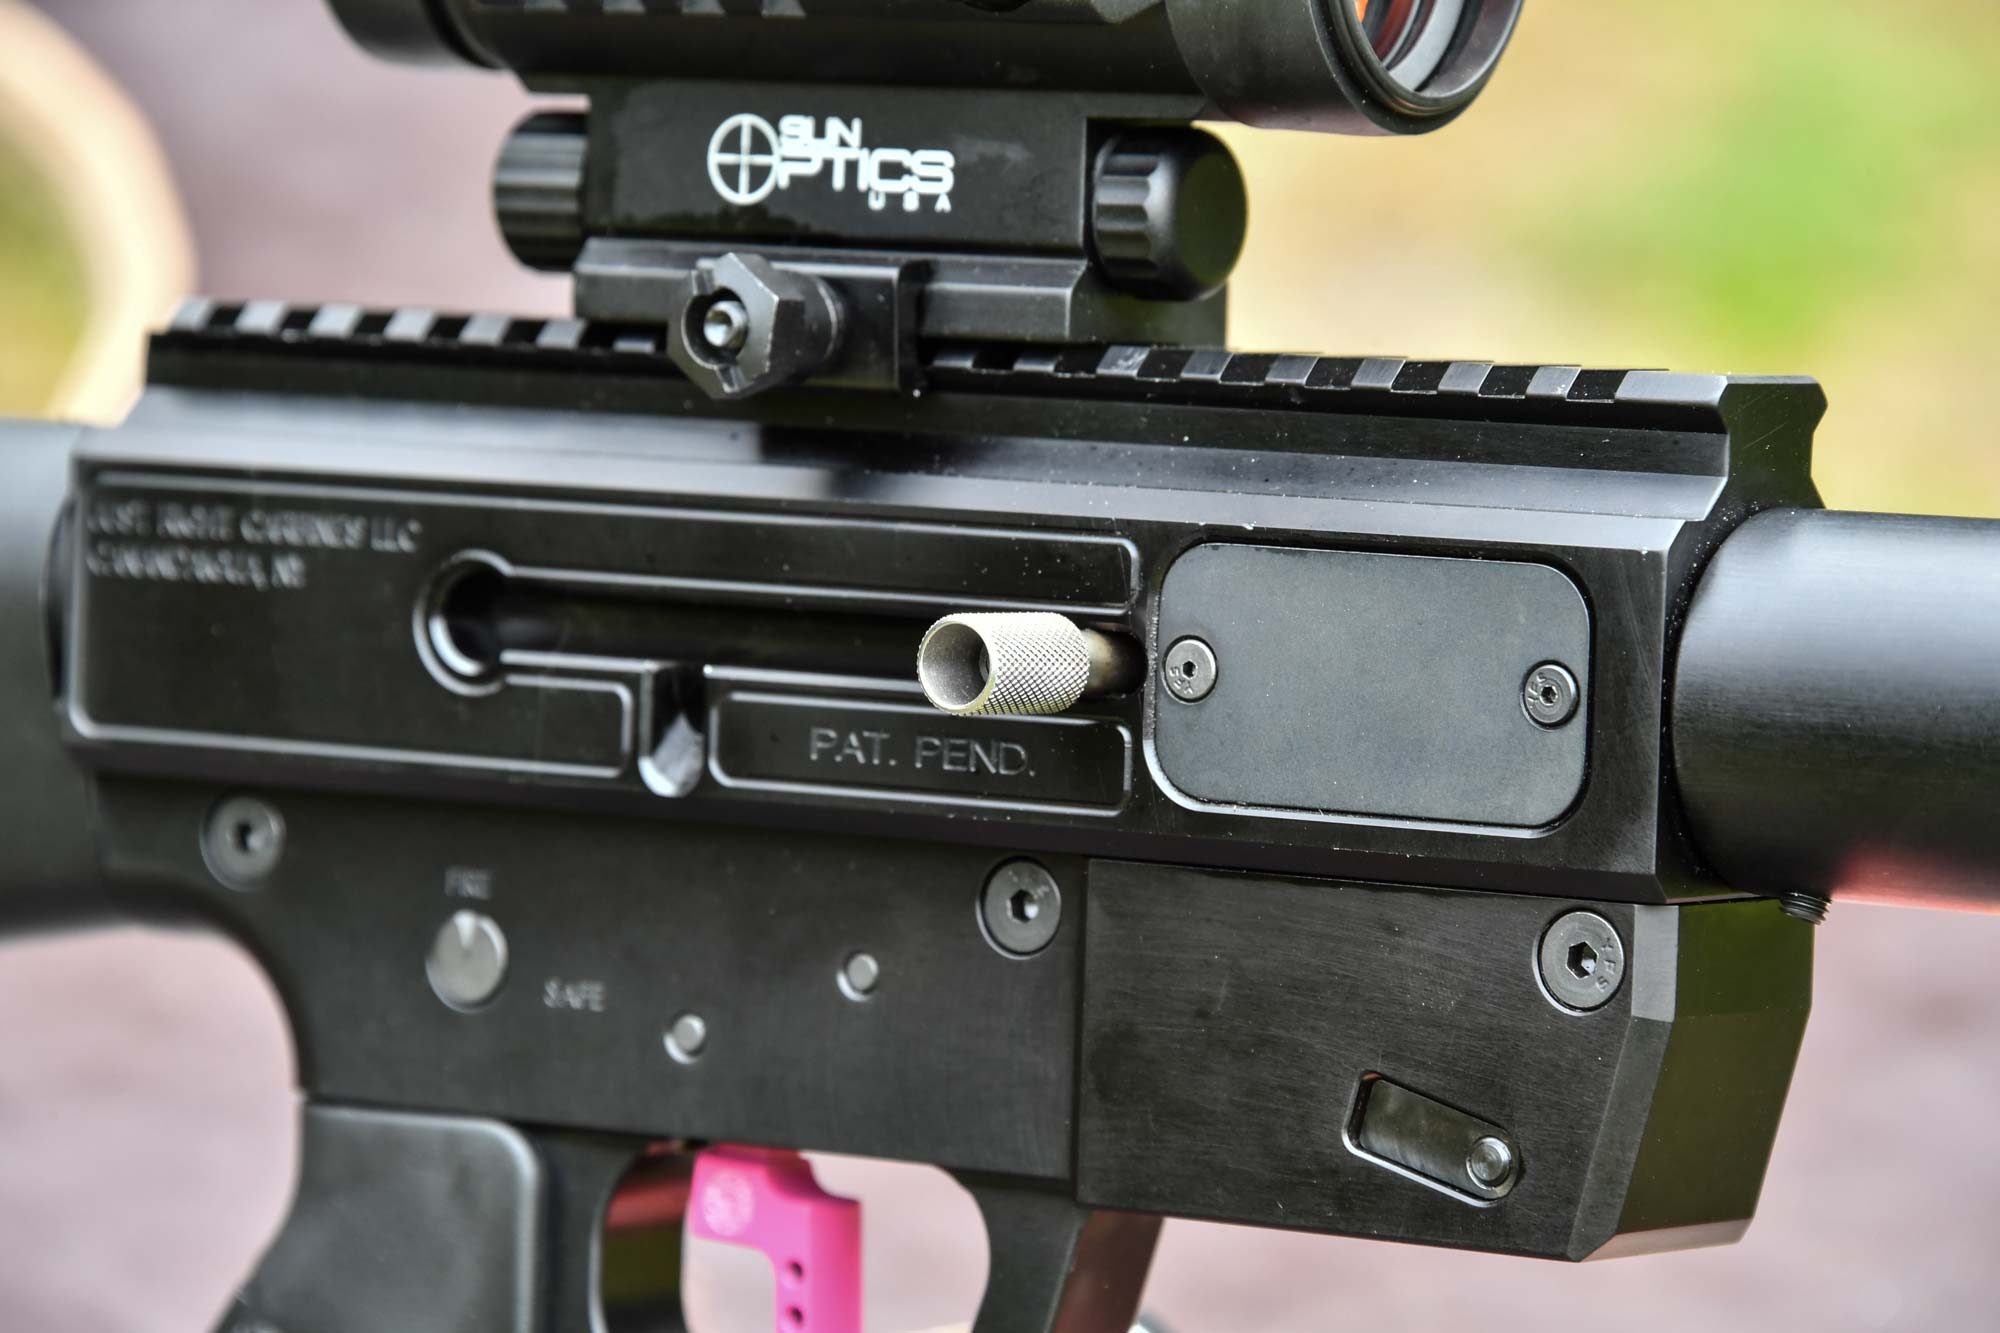 Receiver on the Gen3 Sporter pistol-caliber carbine by Just Right Carbines